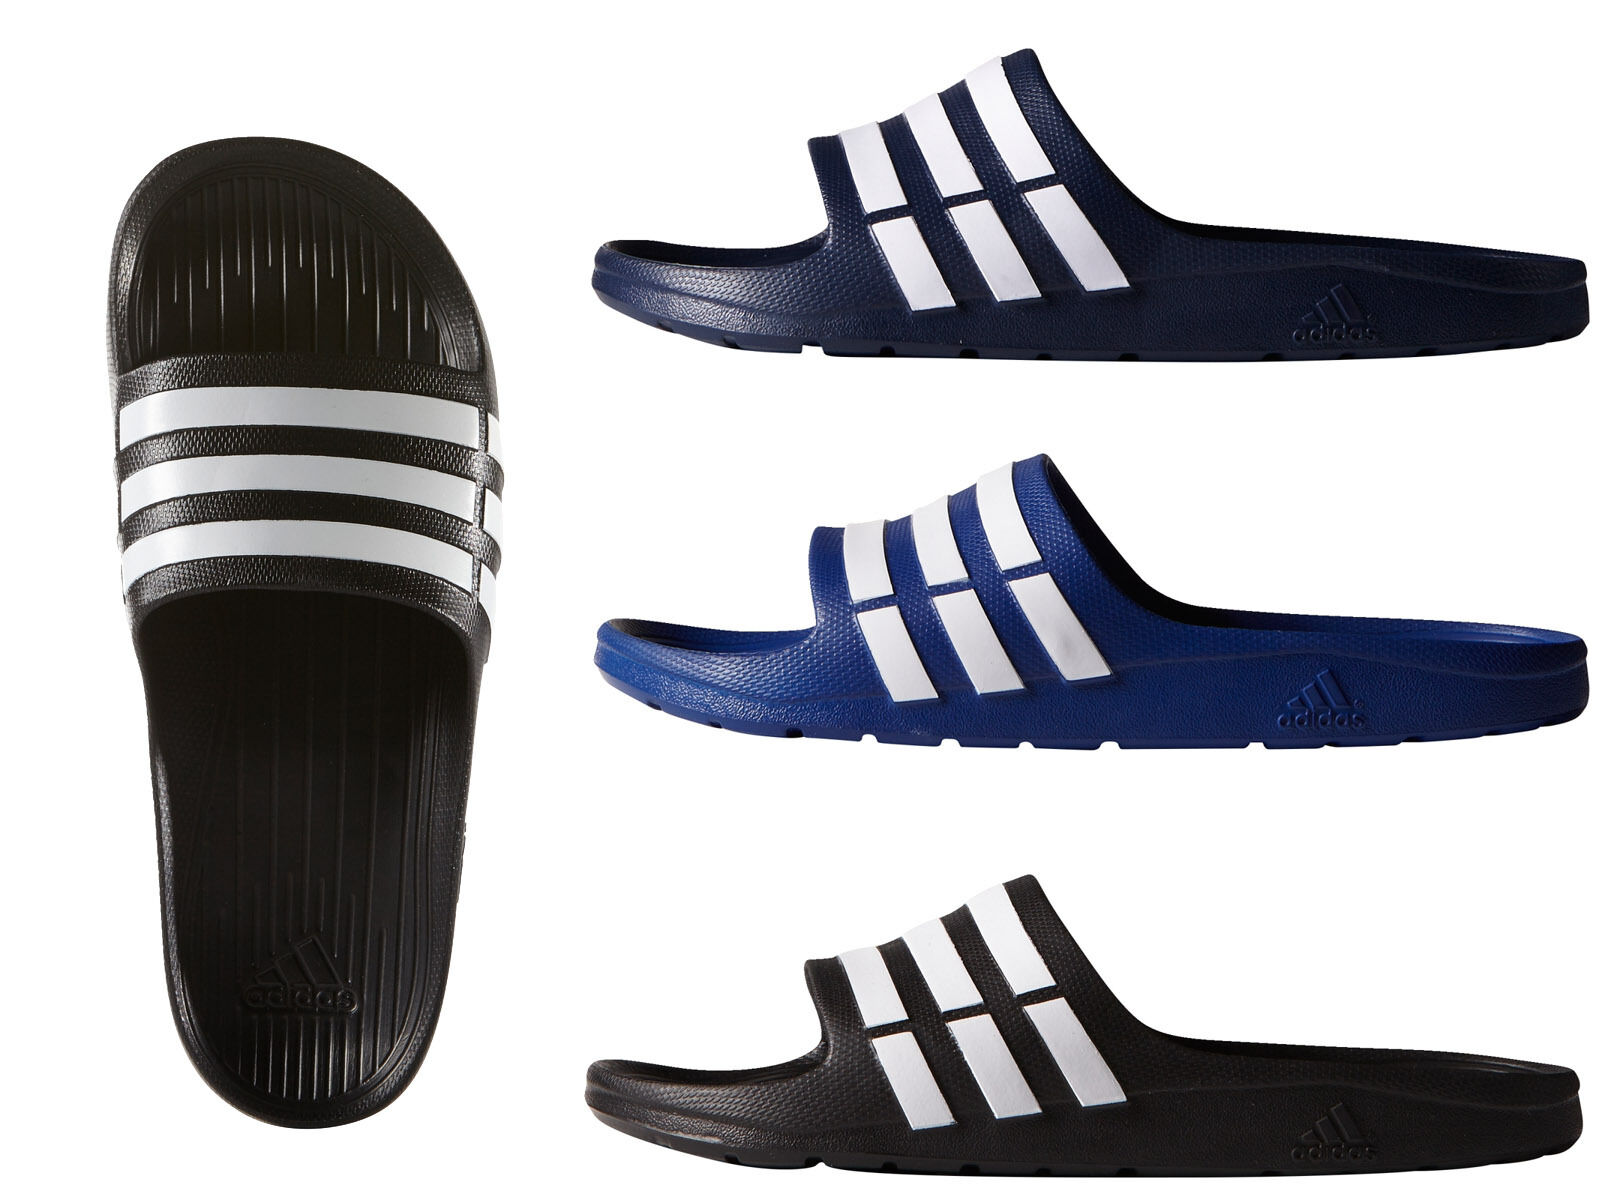 Adidas Duramo Mens Slide Flip-Flops Sandals Pool-Beach Shoes Trainers Slippers New shoes for men and women, limited time discount